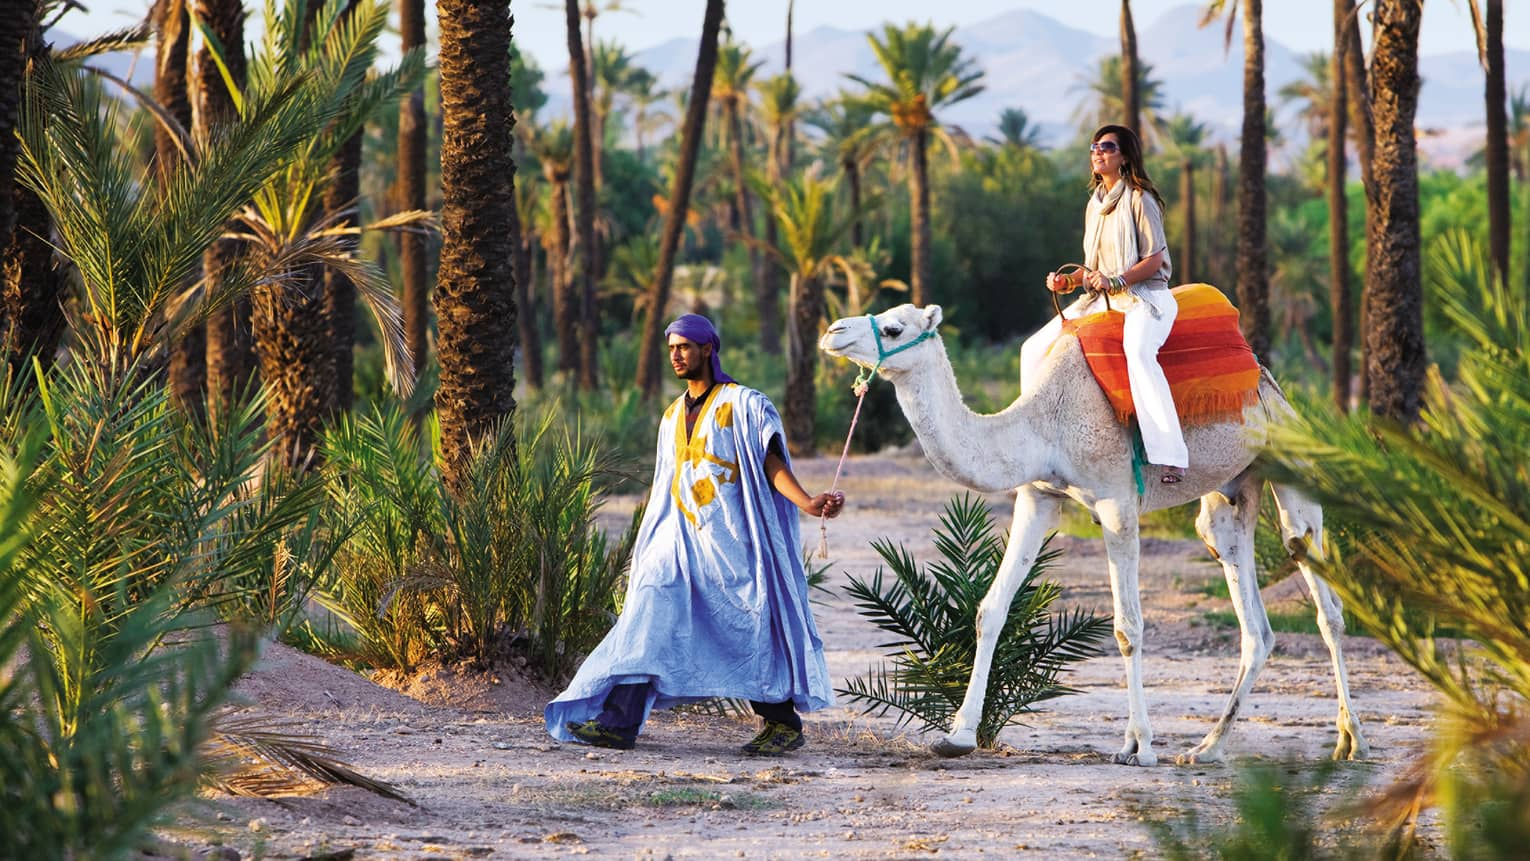 Man leads woman riding camel down sandy path surrounded by palm trees